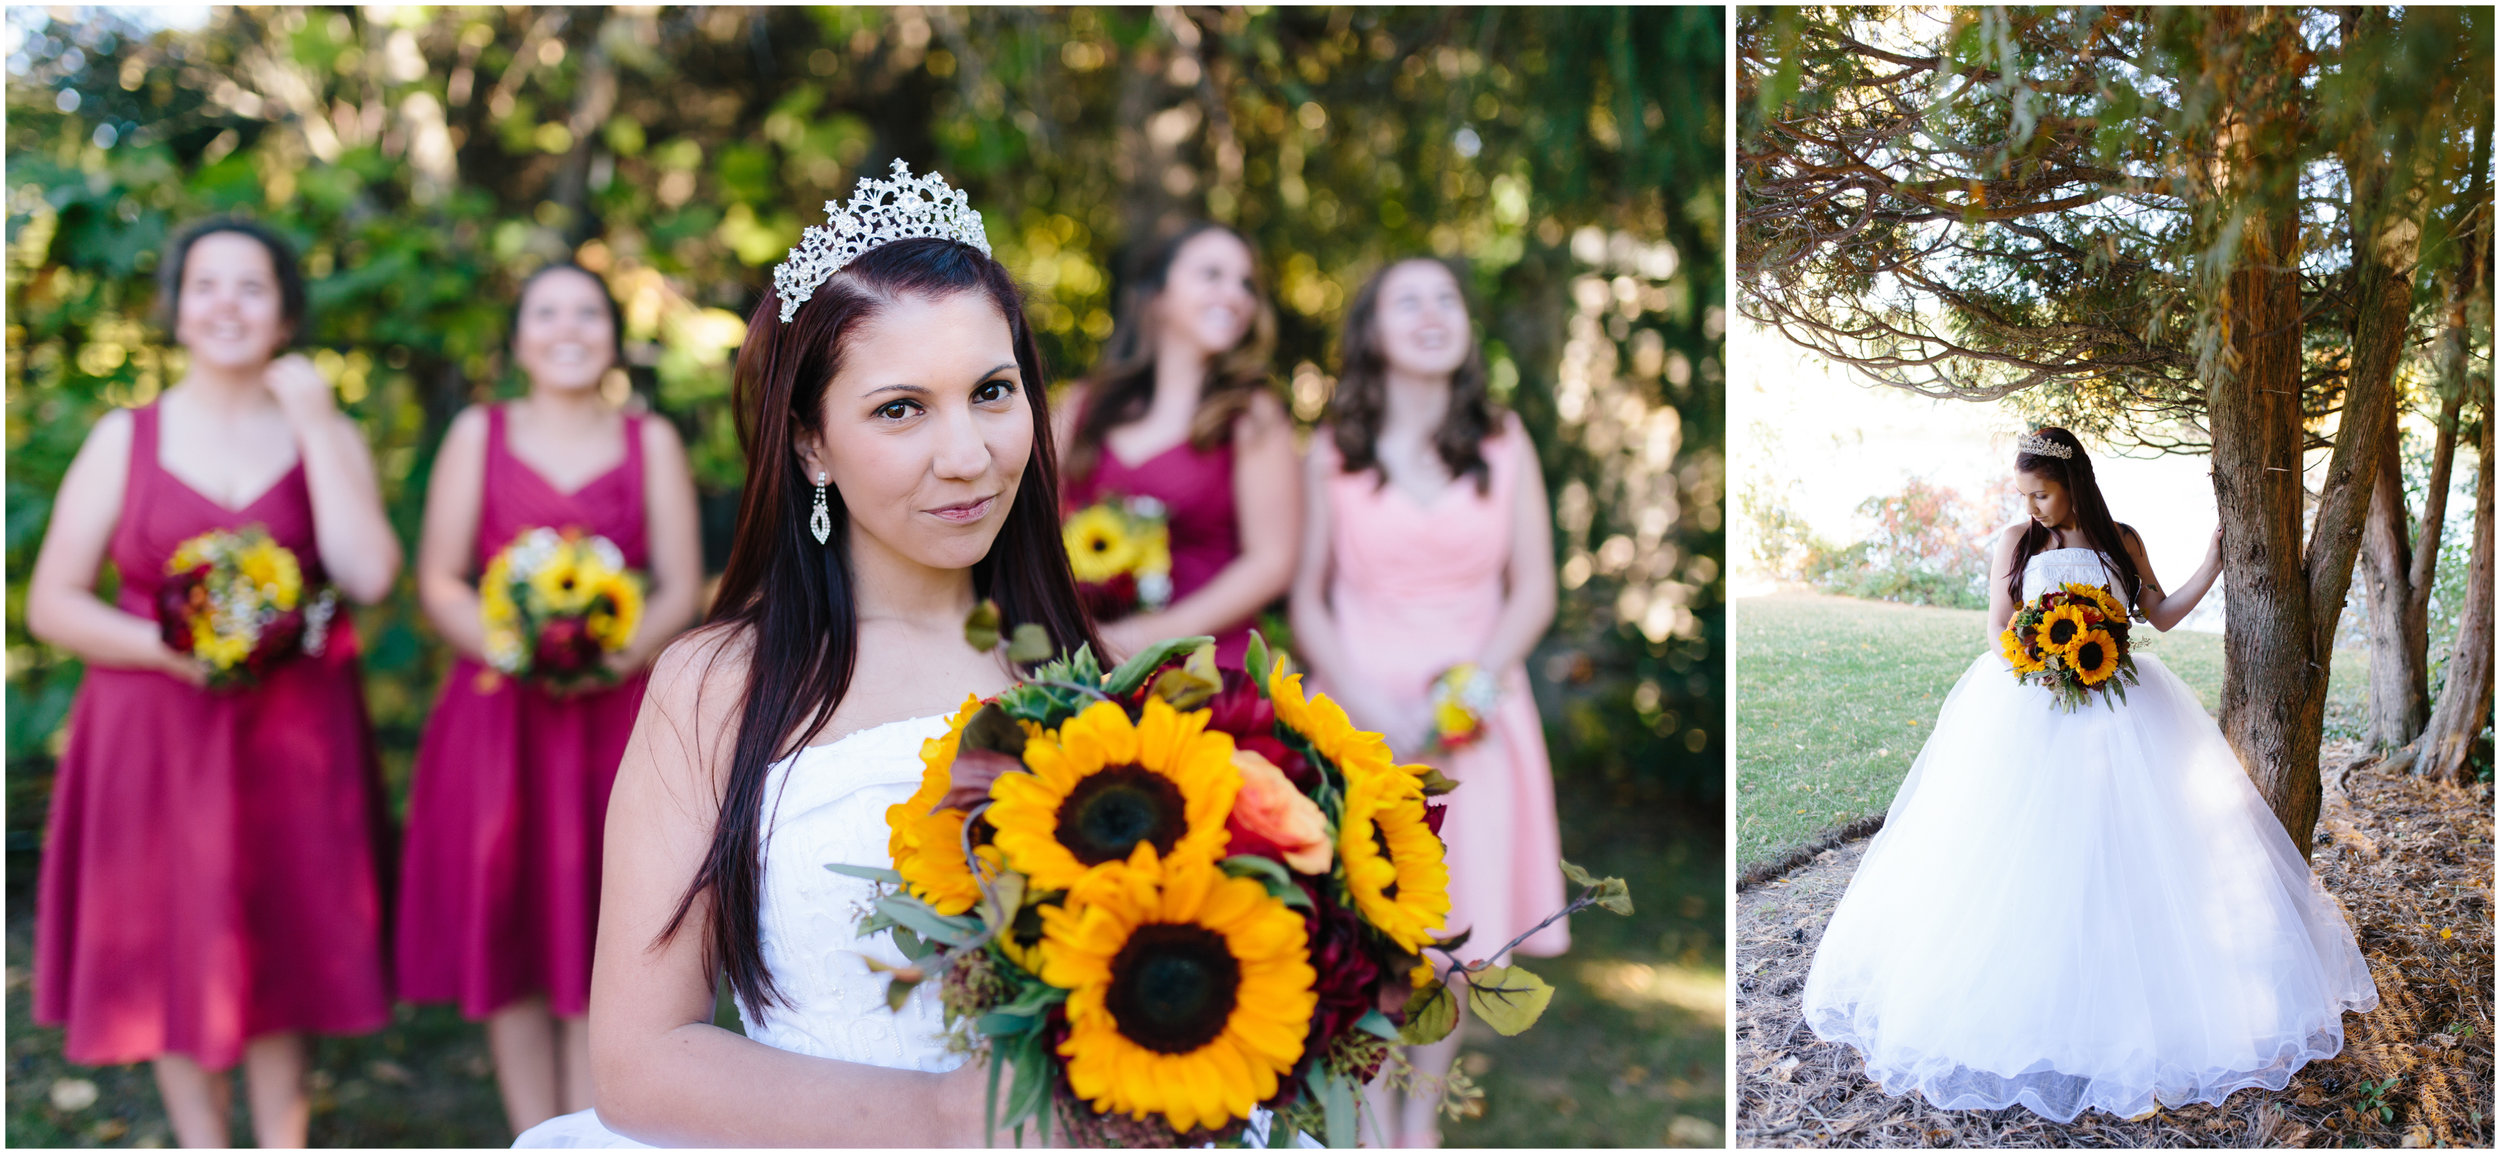 Ashleigh Laureen Photography Journalistic Fall Wedding in Hooksett, New Hampshire, Bride and Bridesmaids